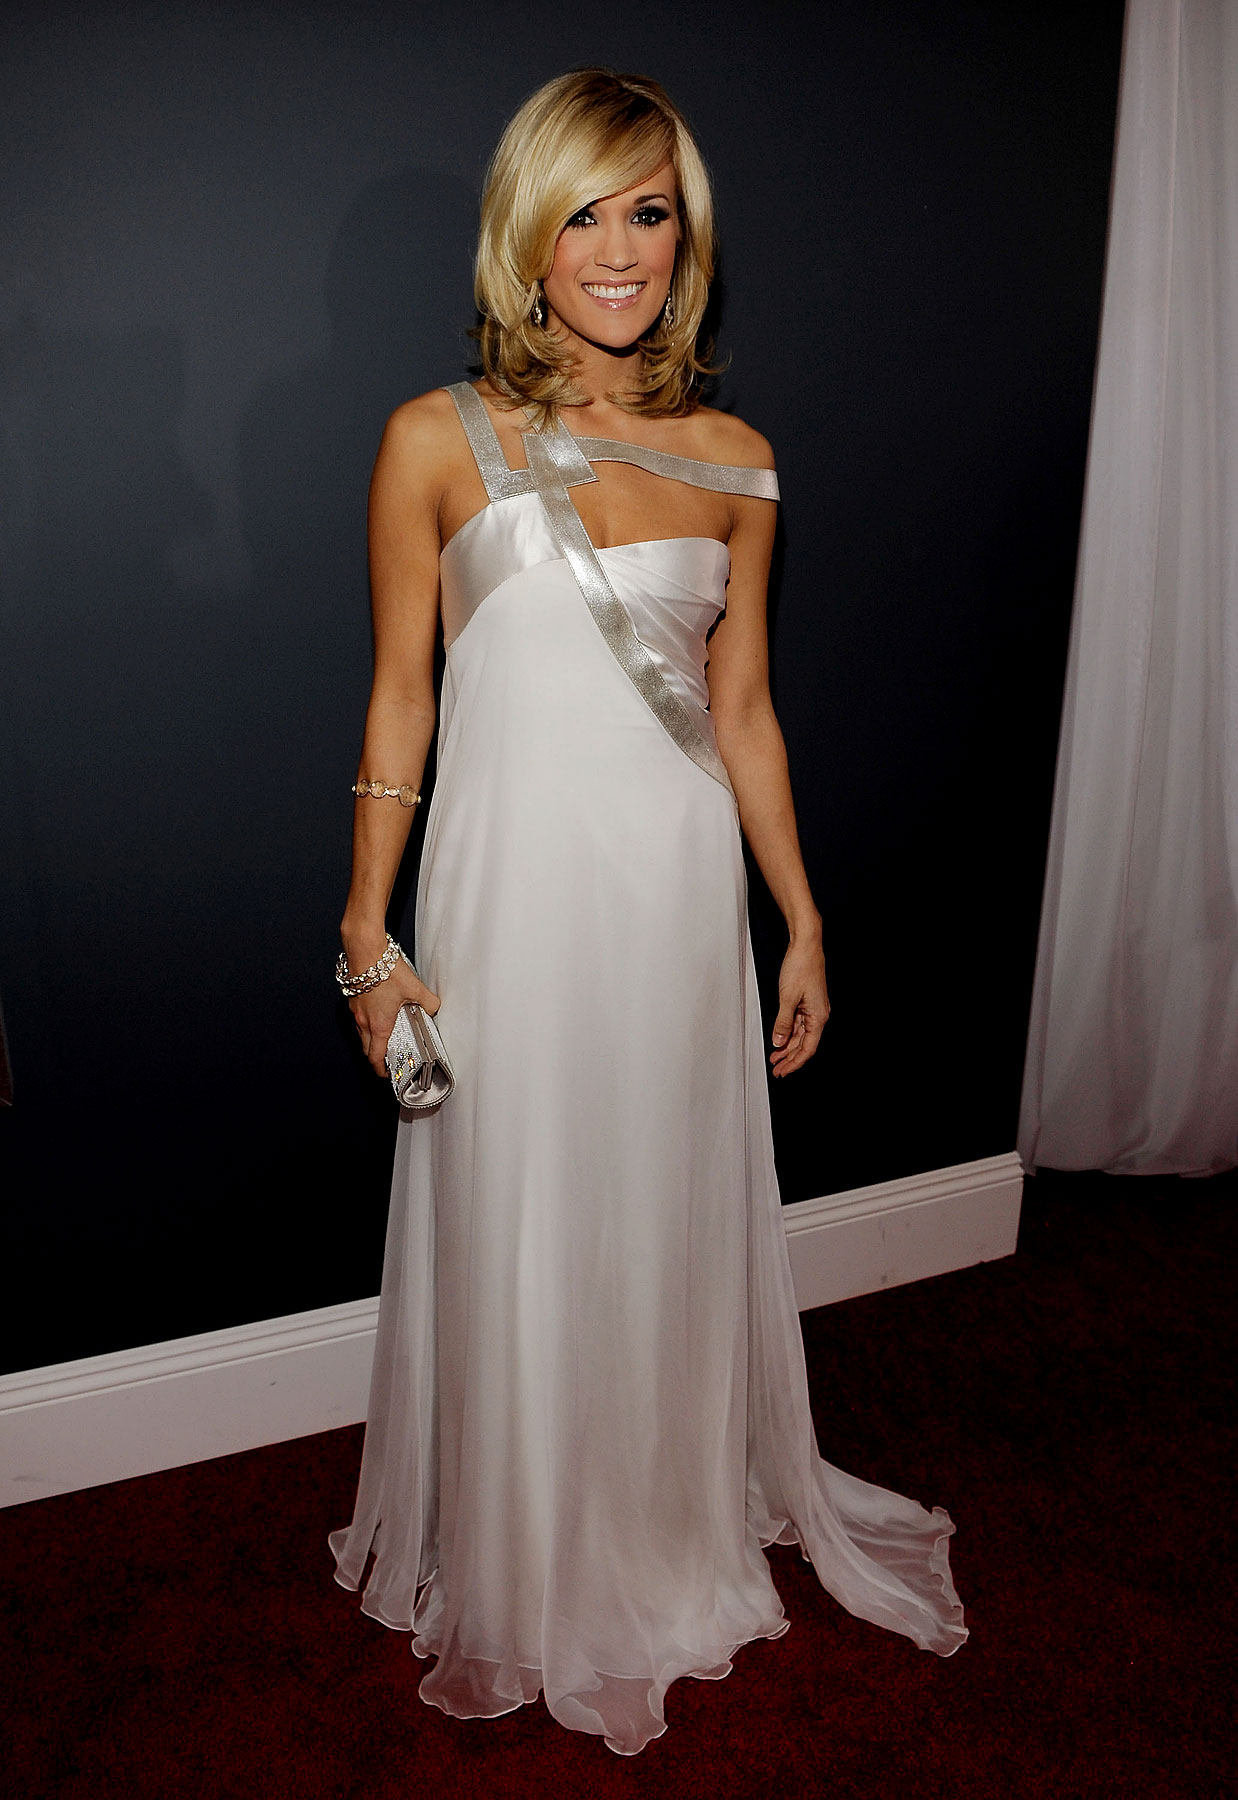 Best Dressed: 2010 Grammy Awards FTWs (PHOTOS)